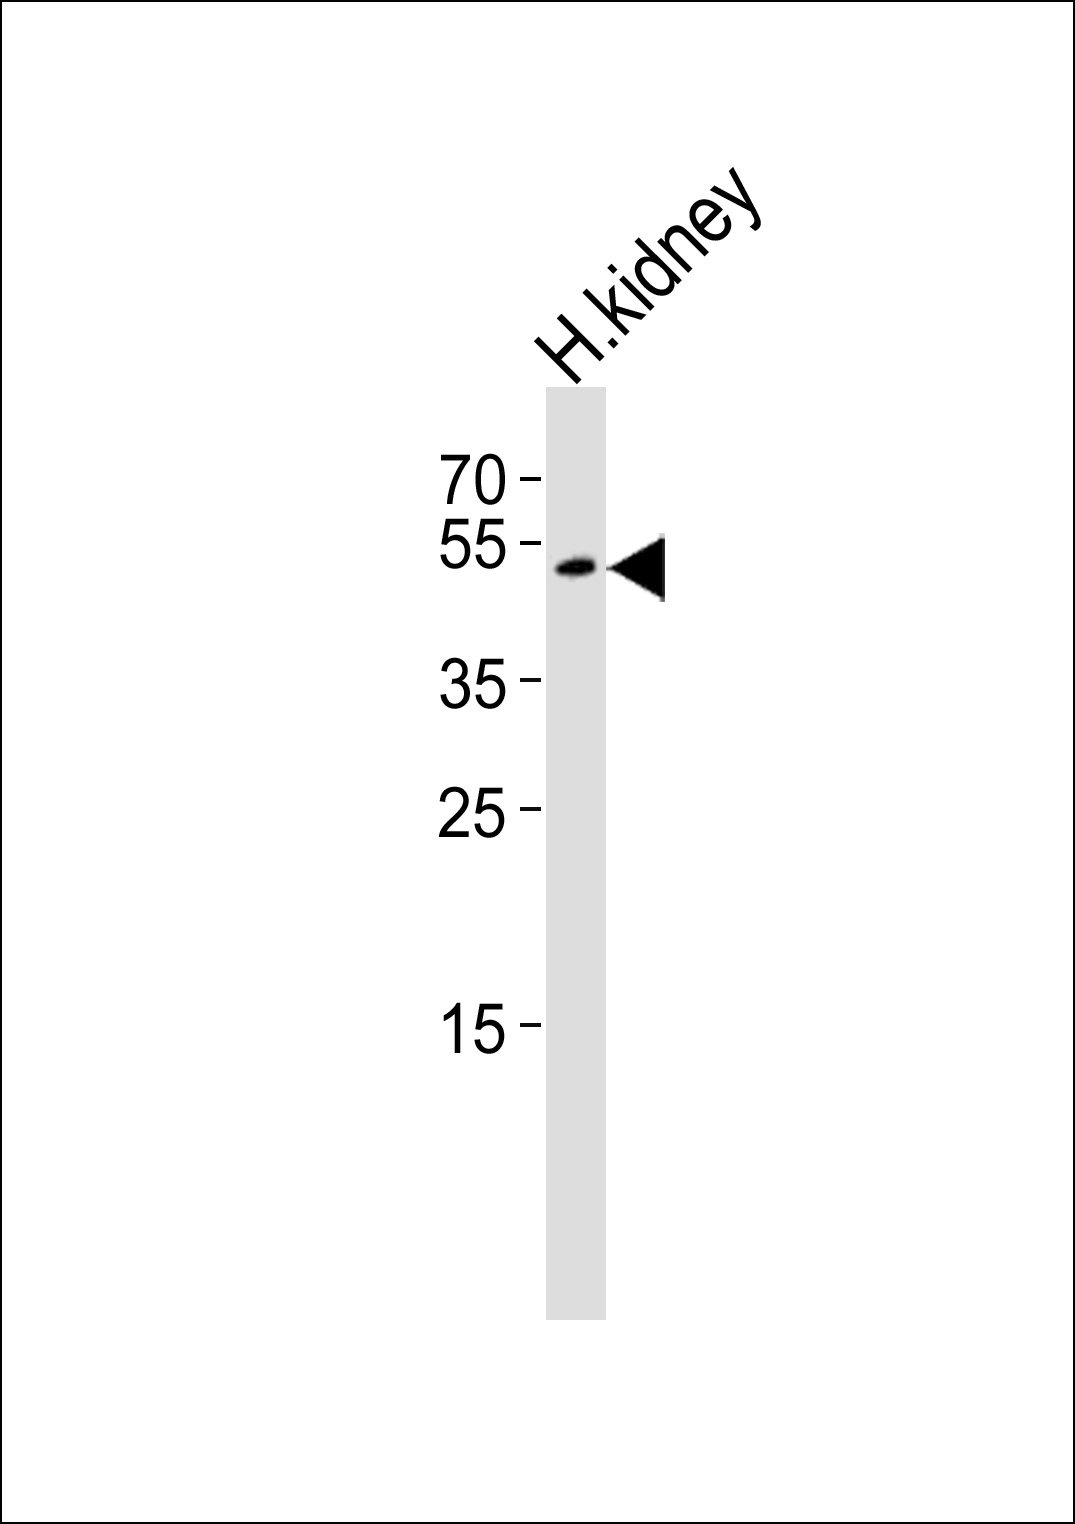 Western blot of lysate from human kidney tissue lysate, using PSMAL Antibody. Antibody was diluted at 1:1000. A goat anti-rabbit IgG H&L (HRP) at 1:10000 dilution was used as the secondary antibody. Lysate at 35ug.